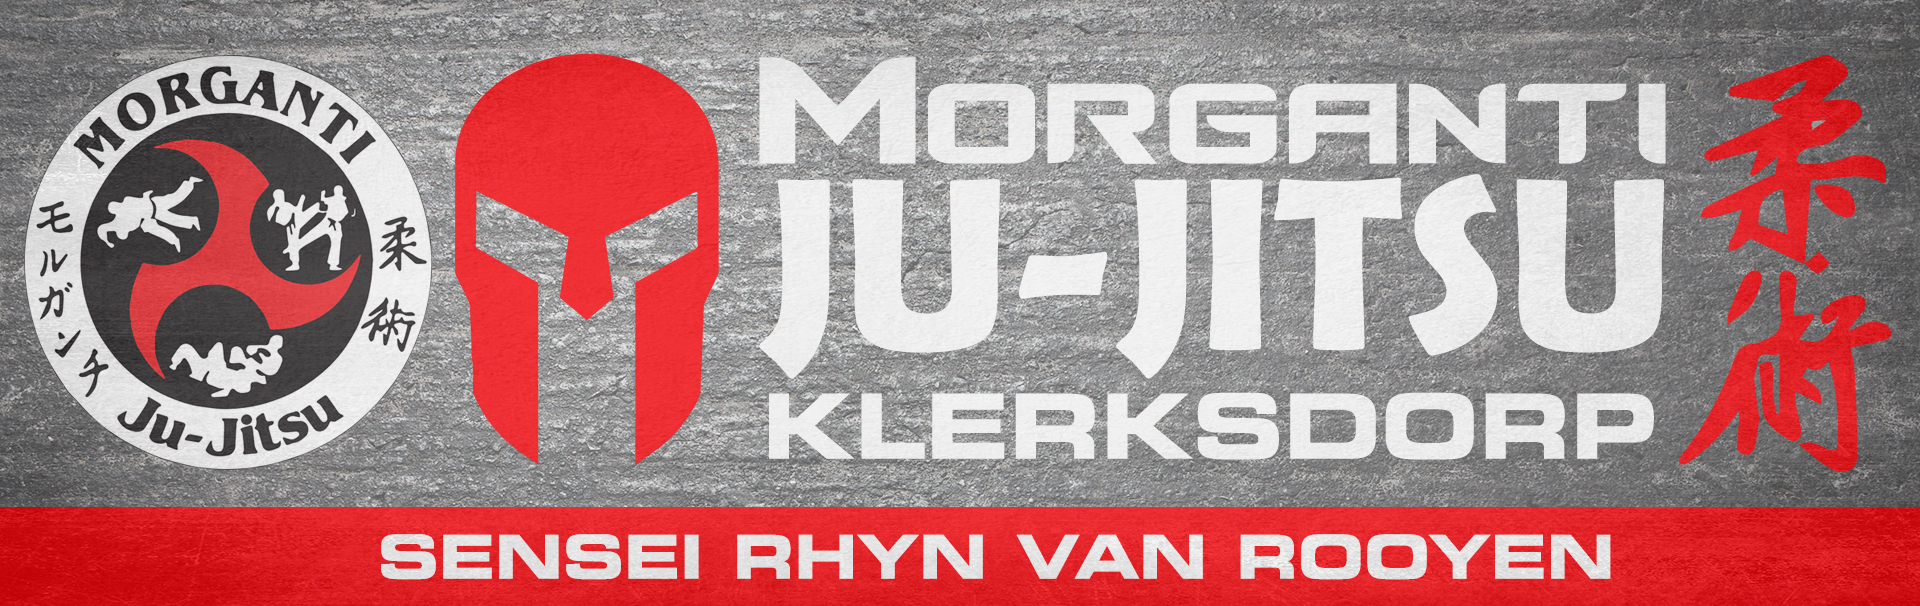 MJJ Competition Klerksdorp June 2018 | Morganti Ju-Jitsu Klerksdorp